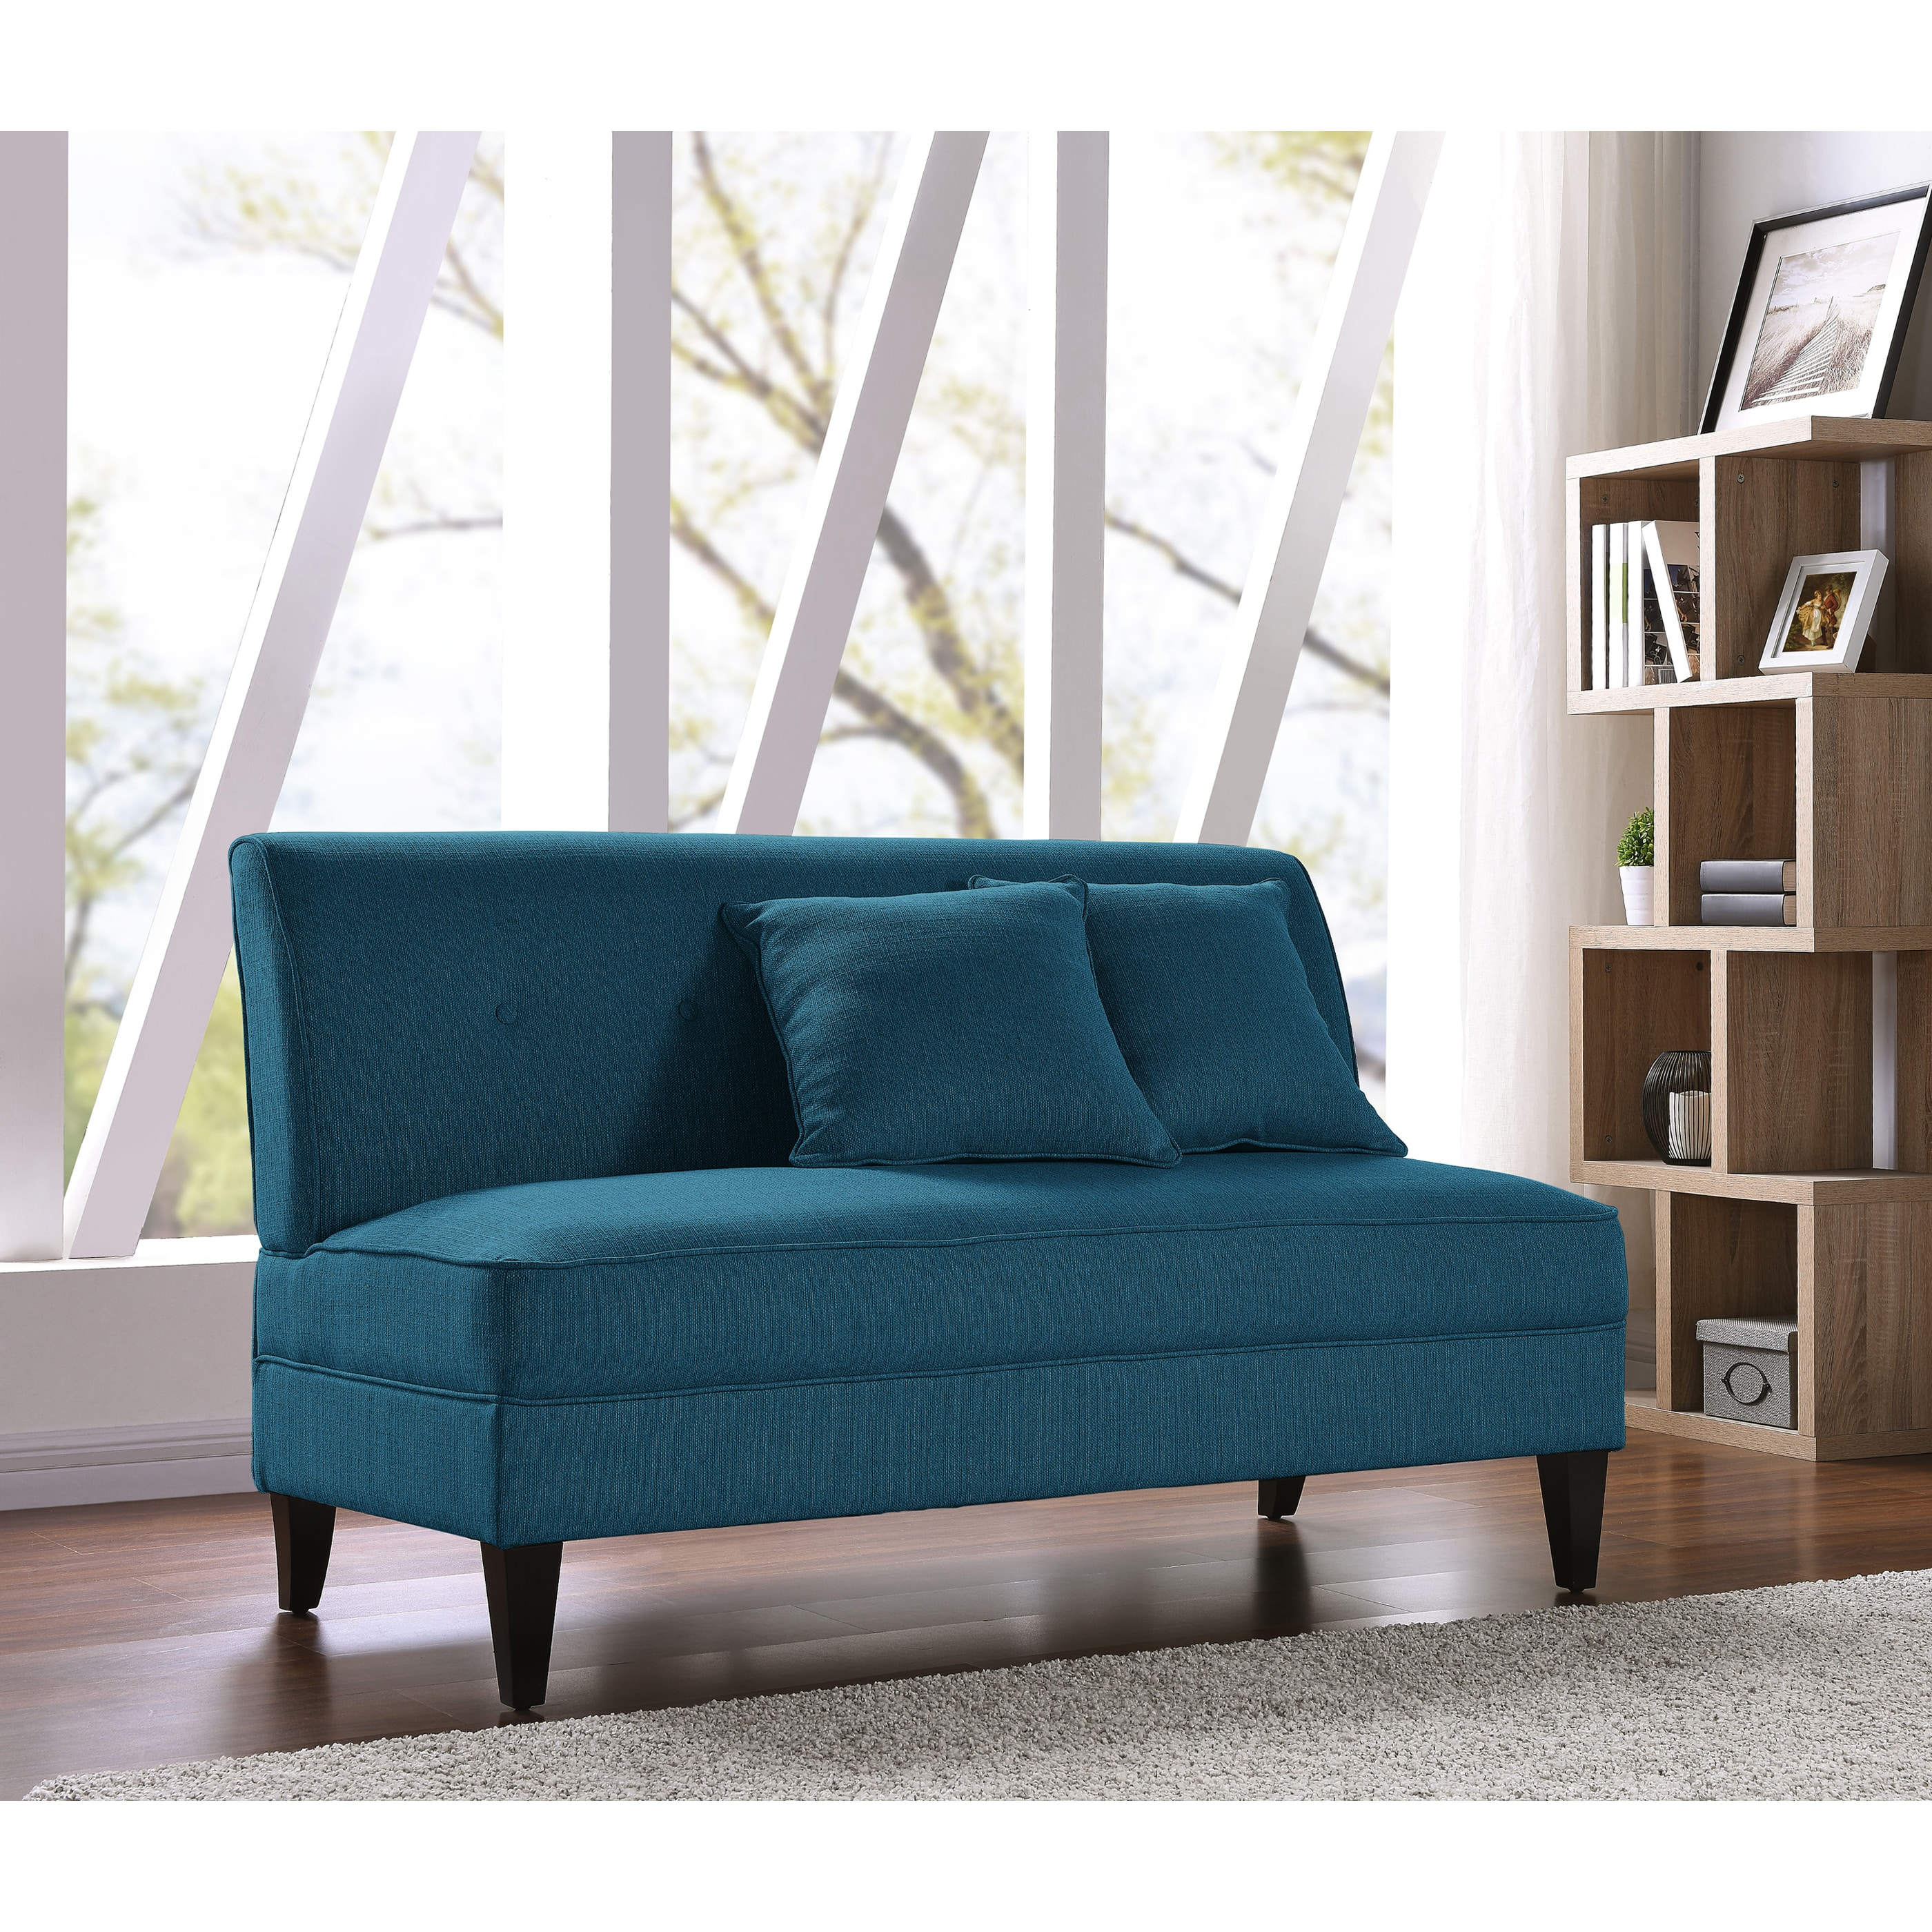 be consider things loveseat you on choice online other stores for to place used the buying these easily your various designs and see make designinyou armless can best sofas while